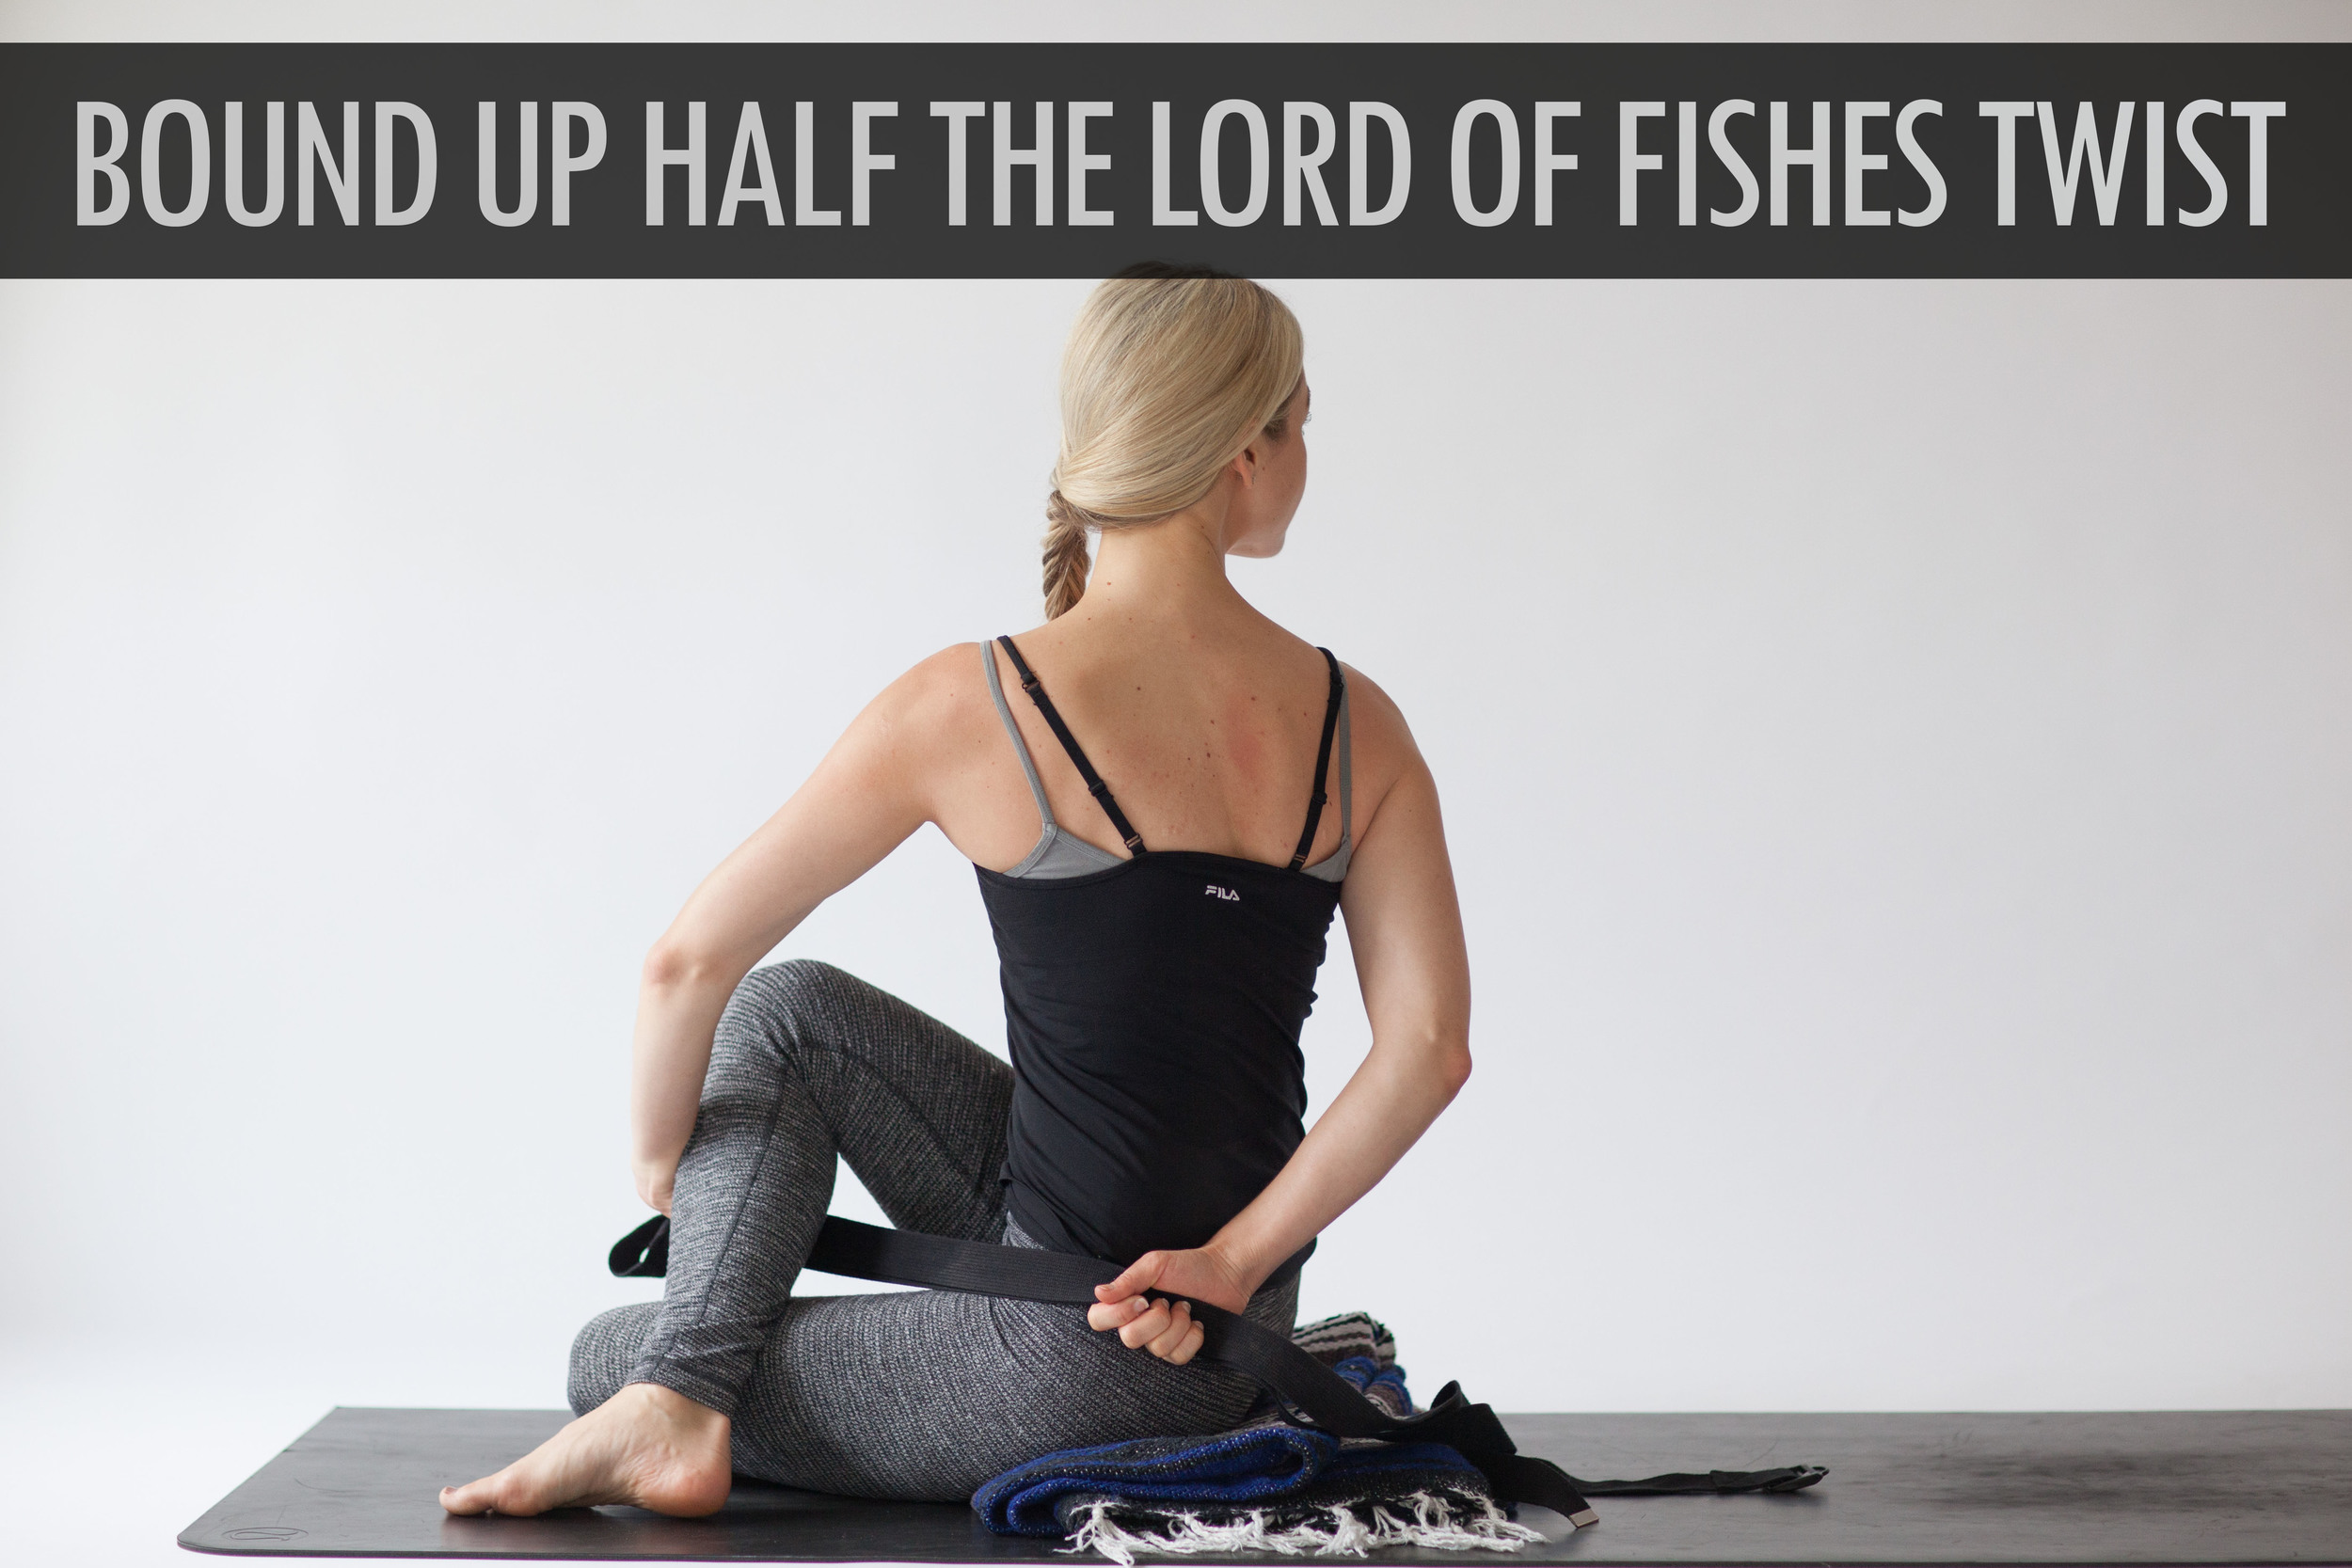 Bound Up Half The Lord Of Fishes Twist.jpg